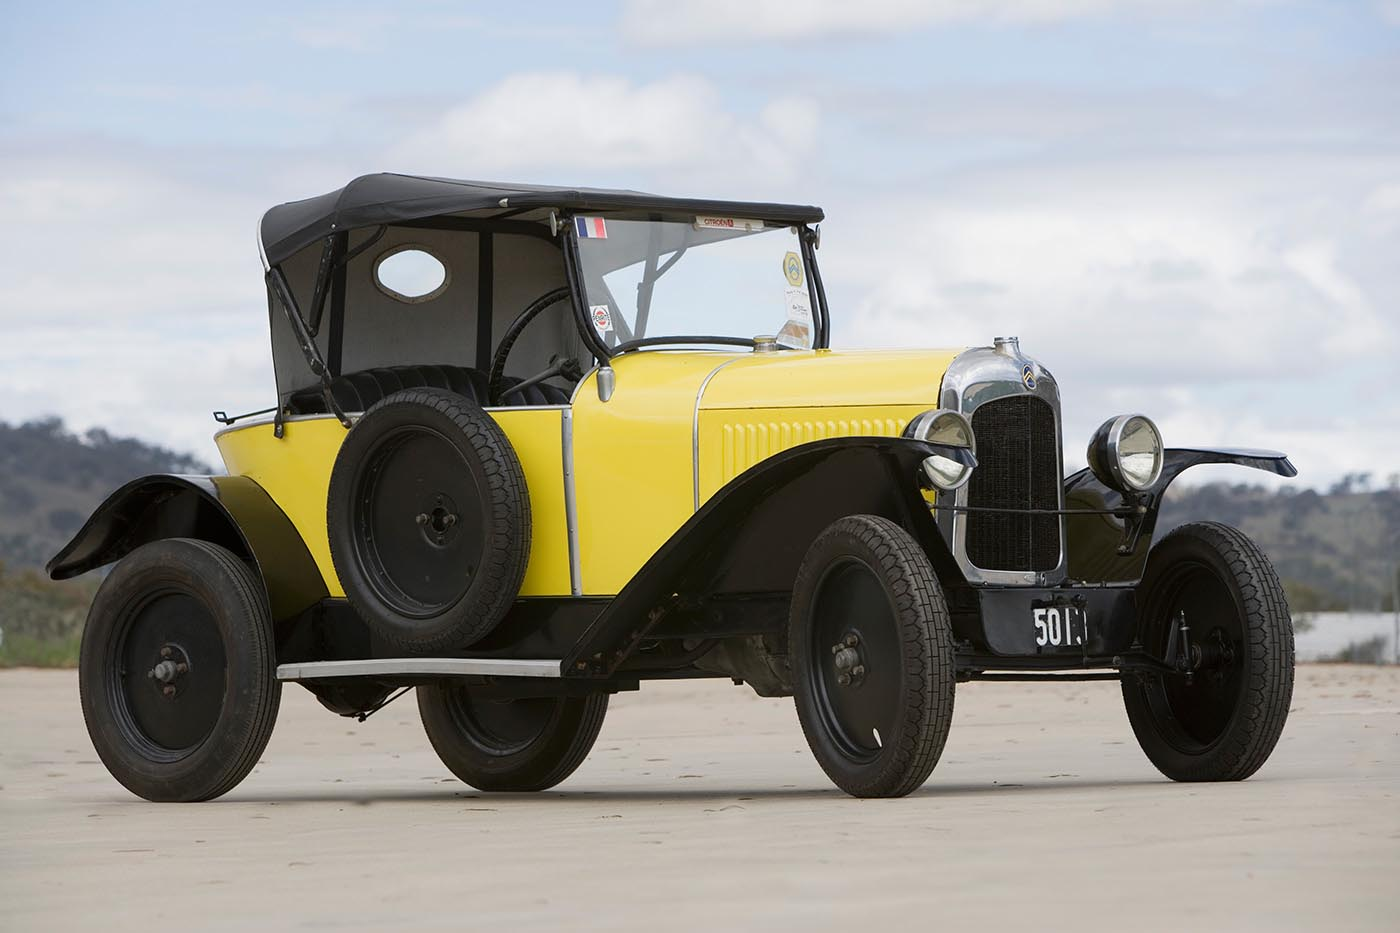 A vintage car with yellow and black features including a soft-top. - click to view larger image